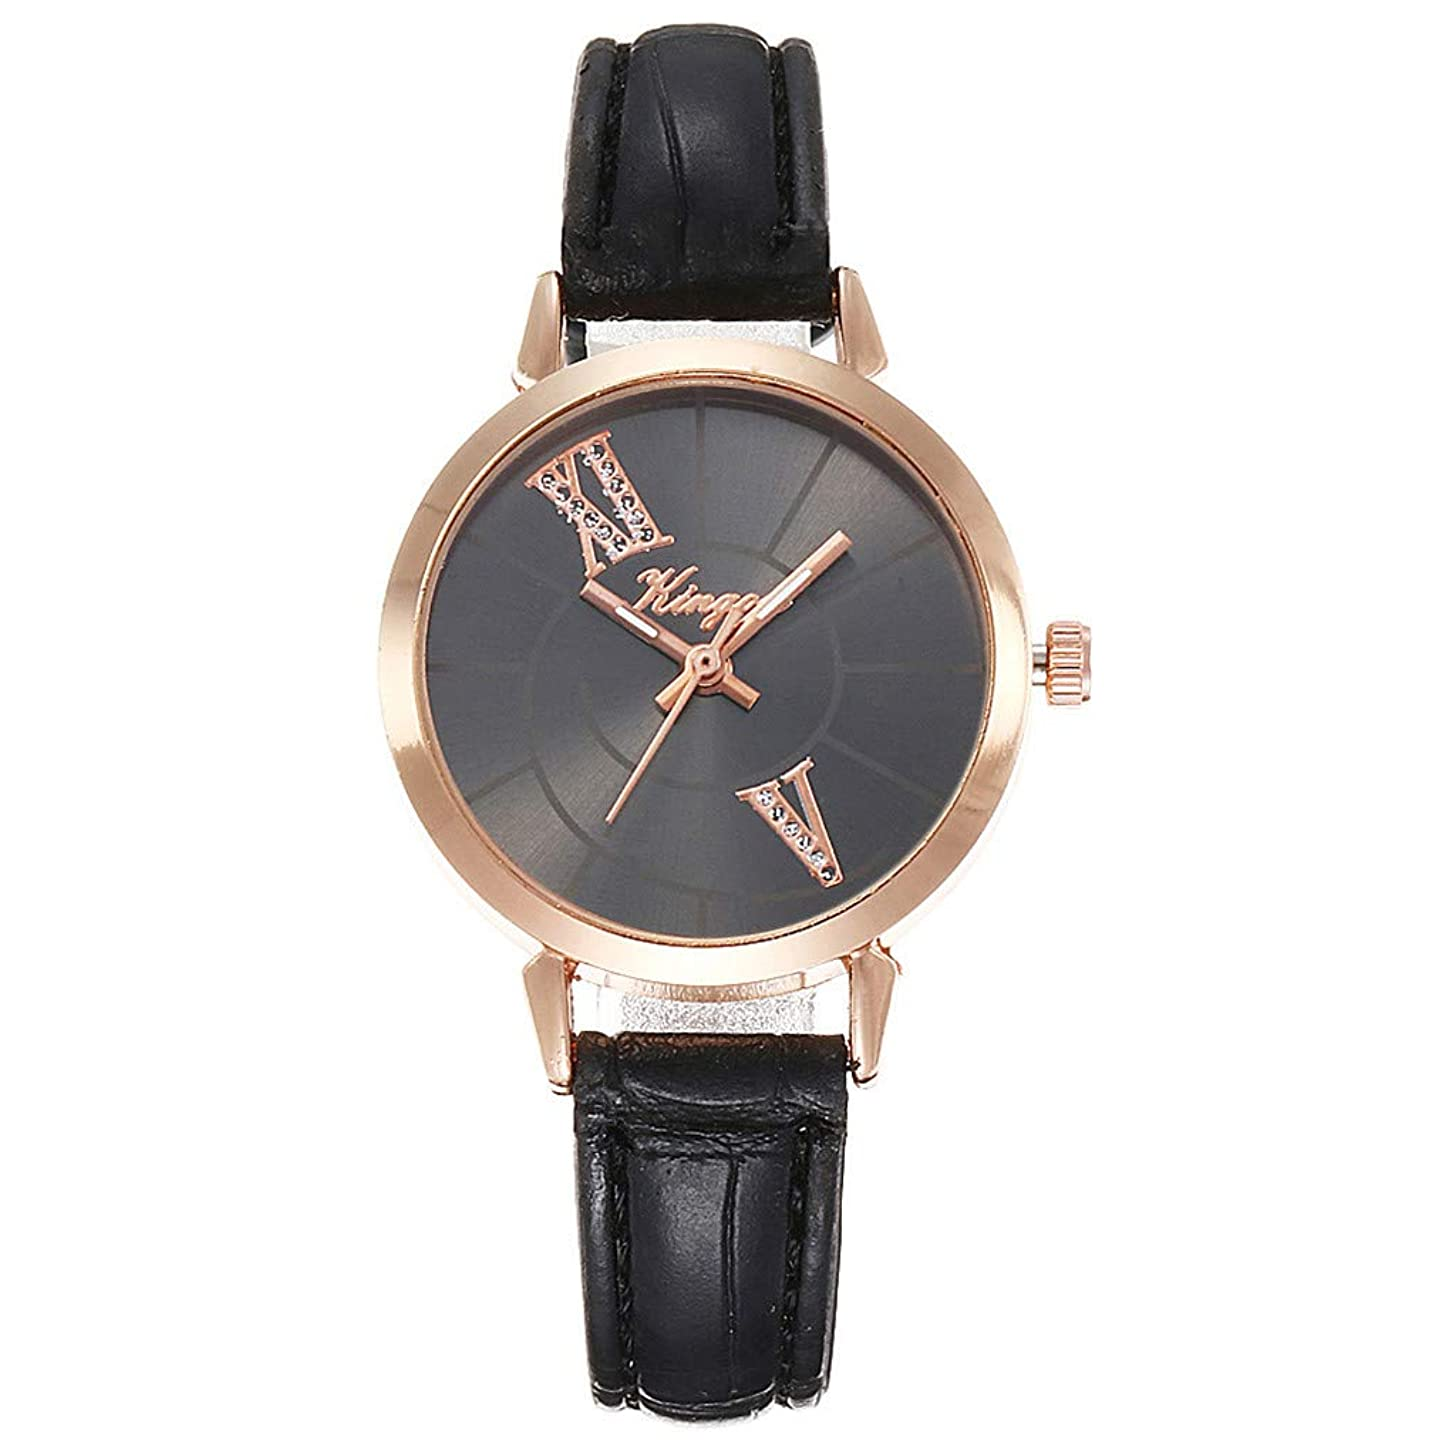 LUCAMORE Womens Watches Quartz Wristwatch Casual Watch Unique Dress Watch Leather Band Fashion Ladies Watch on Sale